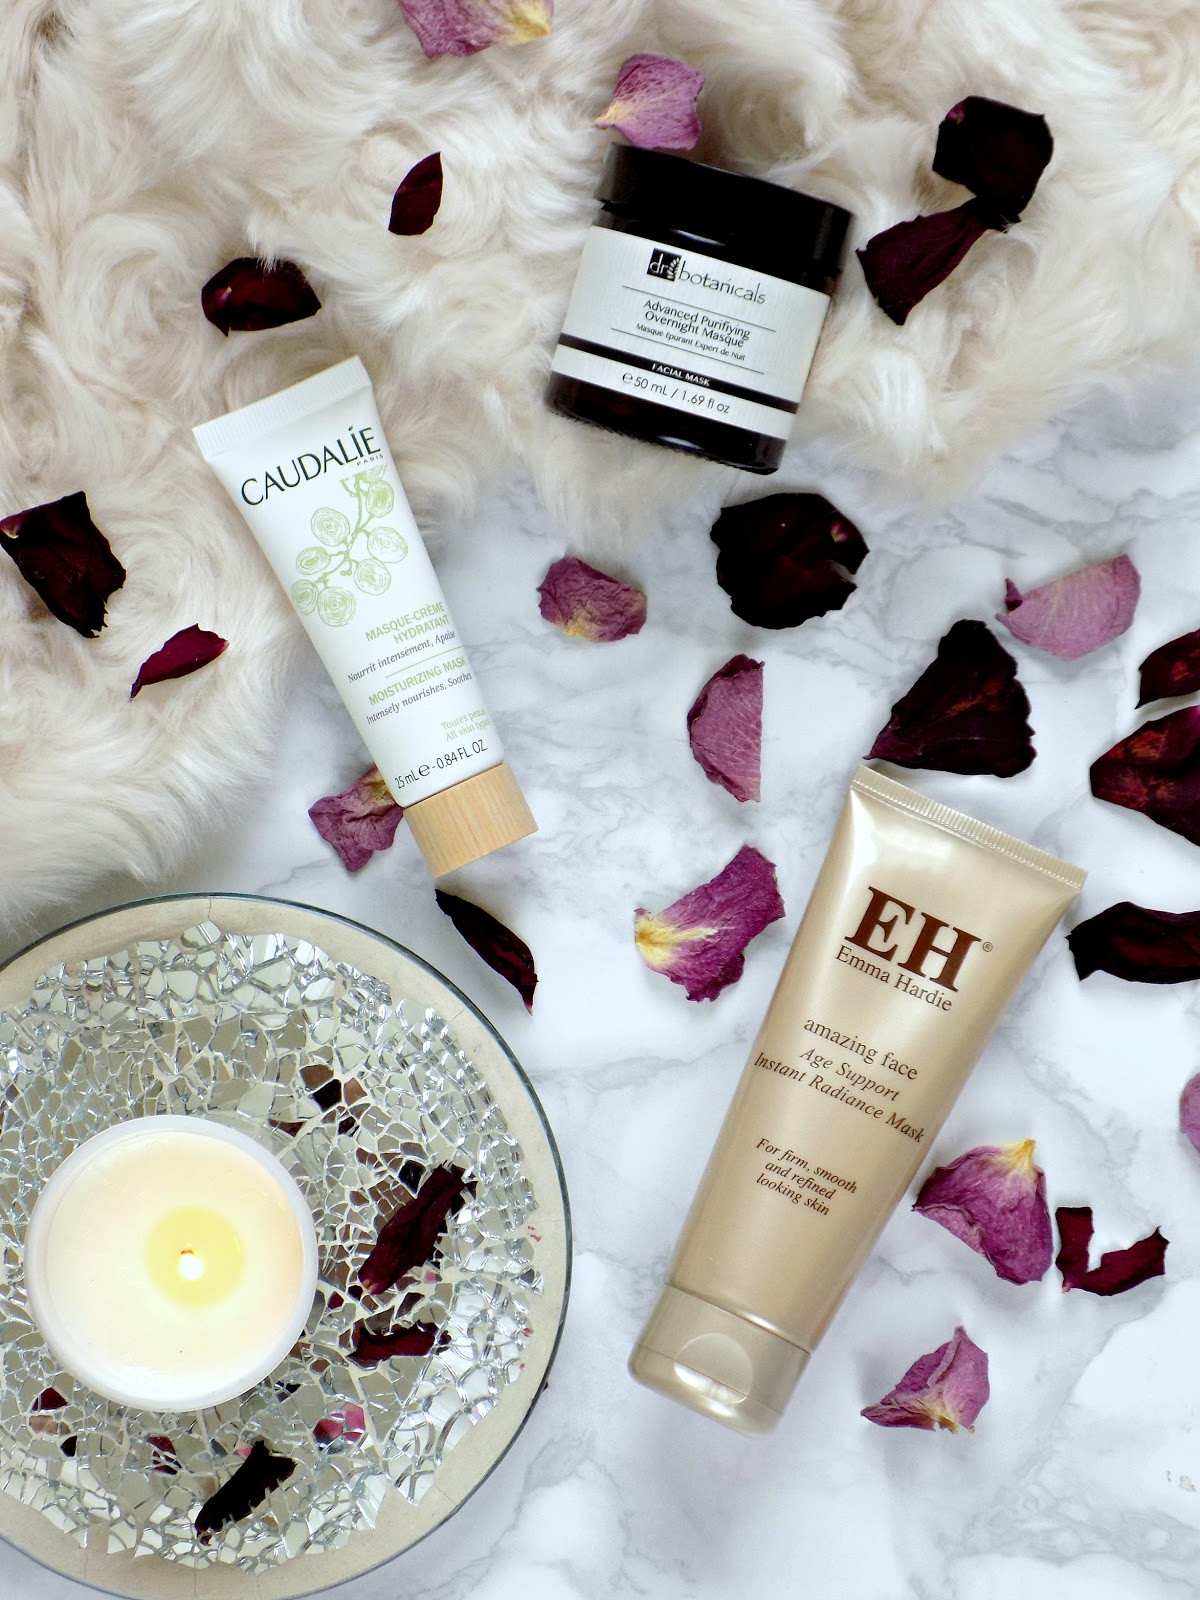 Caudalie Moisturising Mask, Emma Hardie Instant Radiance Mask, DrBotanicals Advanced Purifying Overnight Mask